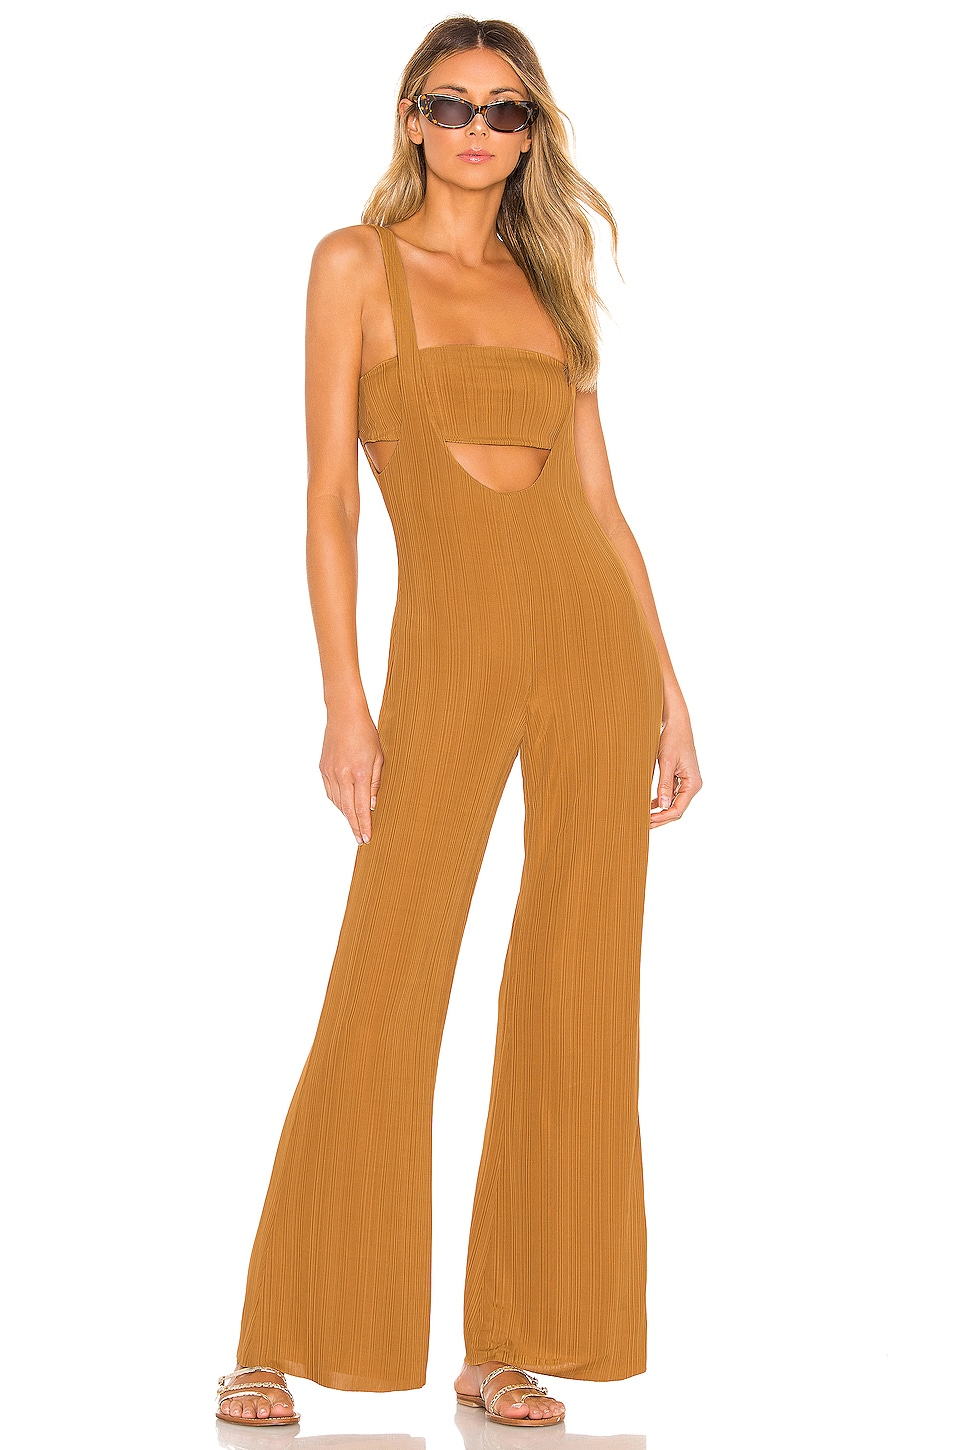 House of Harlow 1960 X REVOLVE Morin Jumpsuit in Toffee